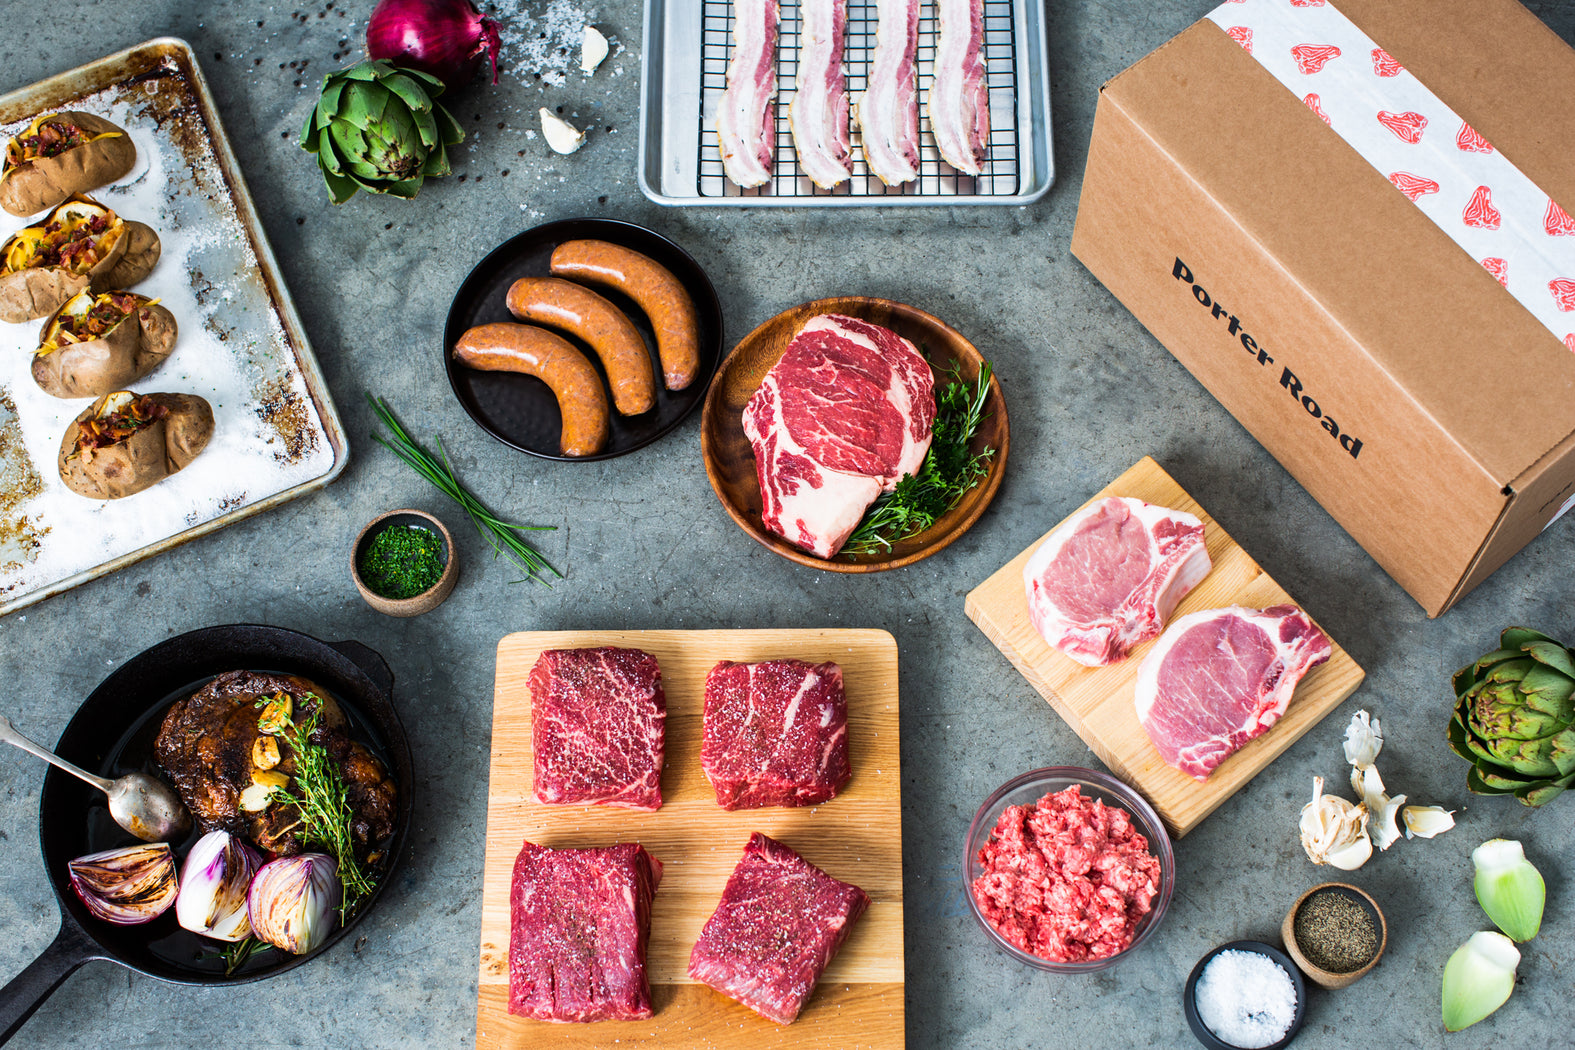 Porter Road meat subscription box shown with a display of steak, sausage, bacon, baked potatoes, and other ingredients.